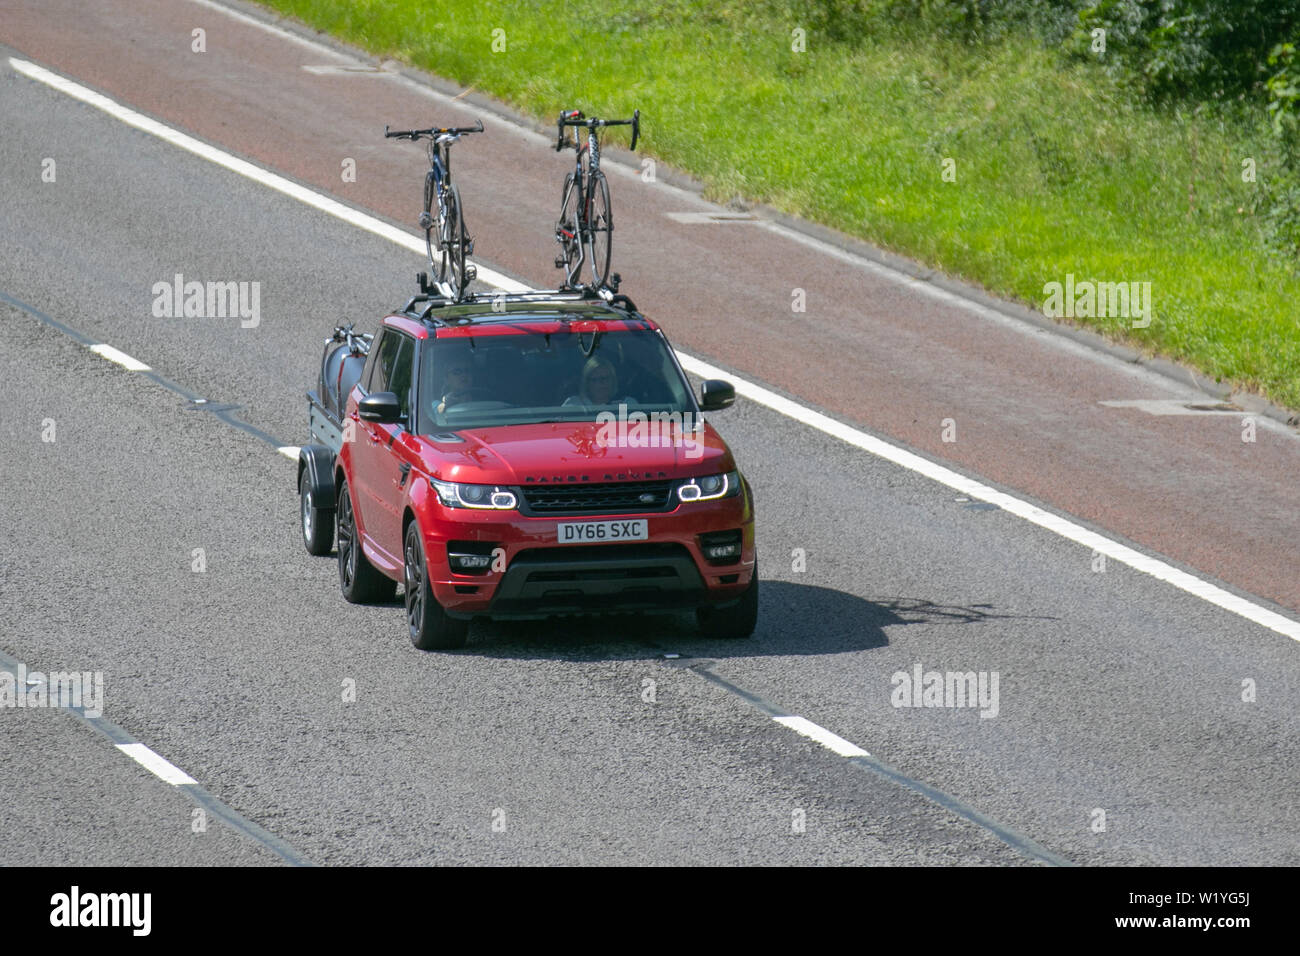 https www alamy com 2016 red land rover r rover sport hse dynam s uk vehicular traffic transport roof mounted bicycle carrier roof top bike carrier bike rack cycle carriers modern saloon cars north bound on the 3 lane highway image259375582 html